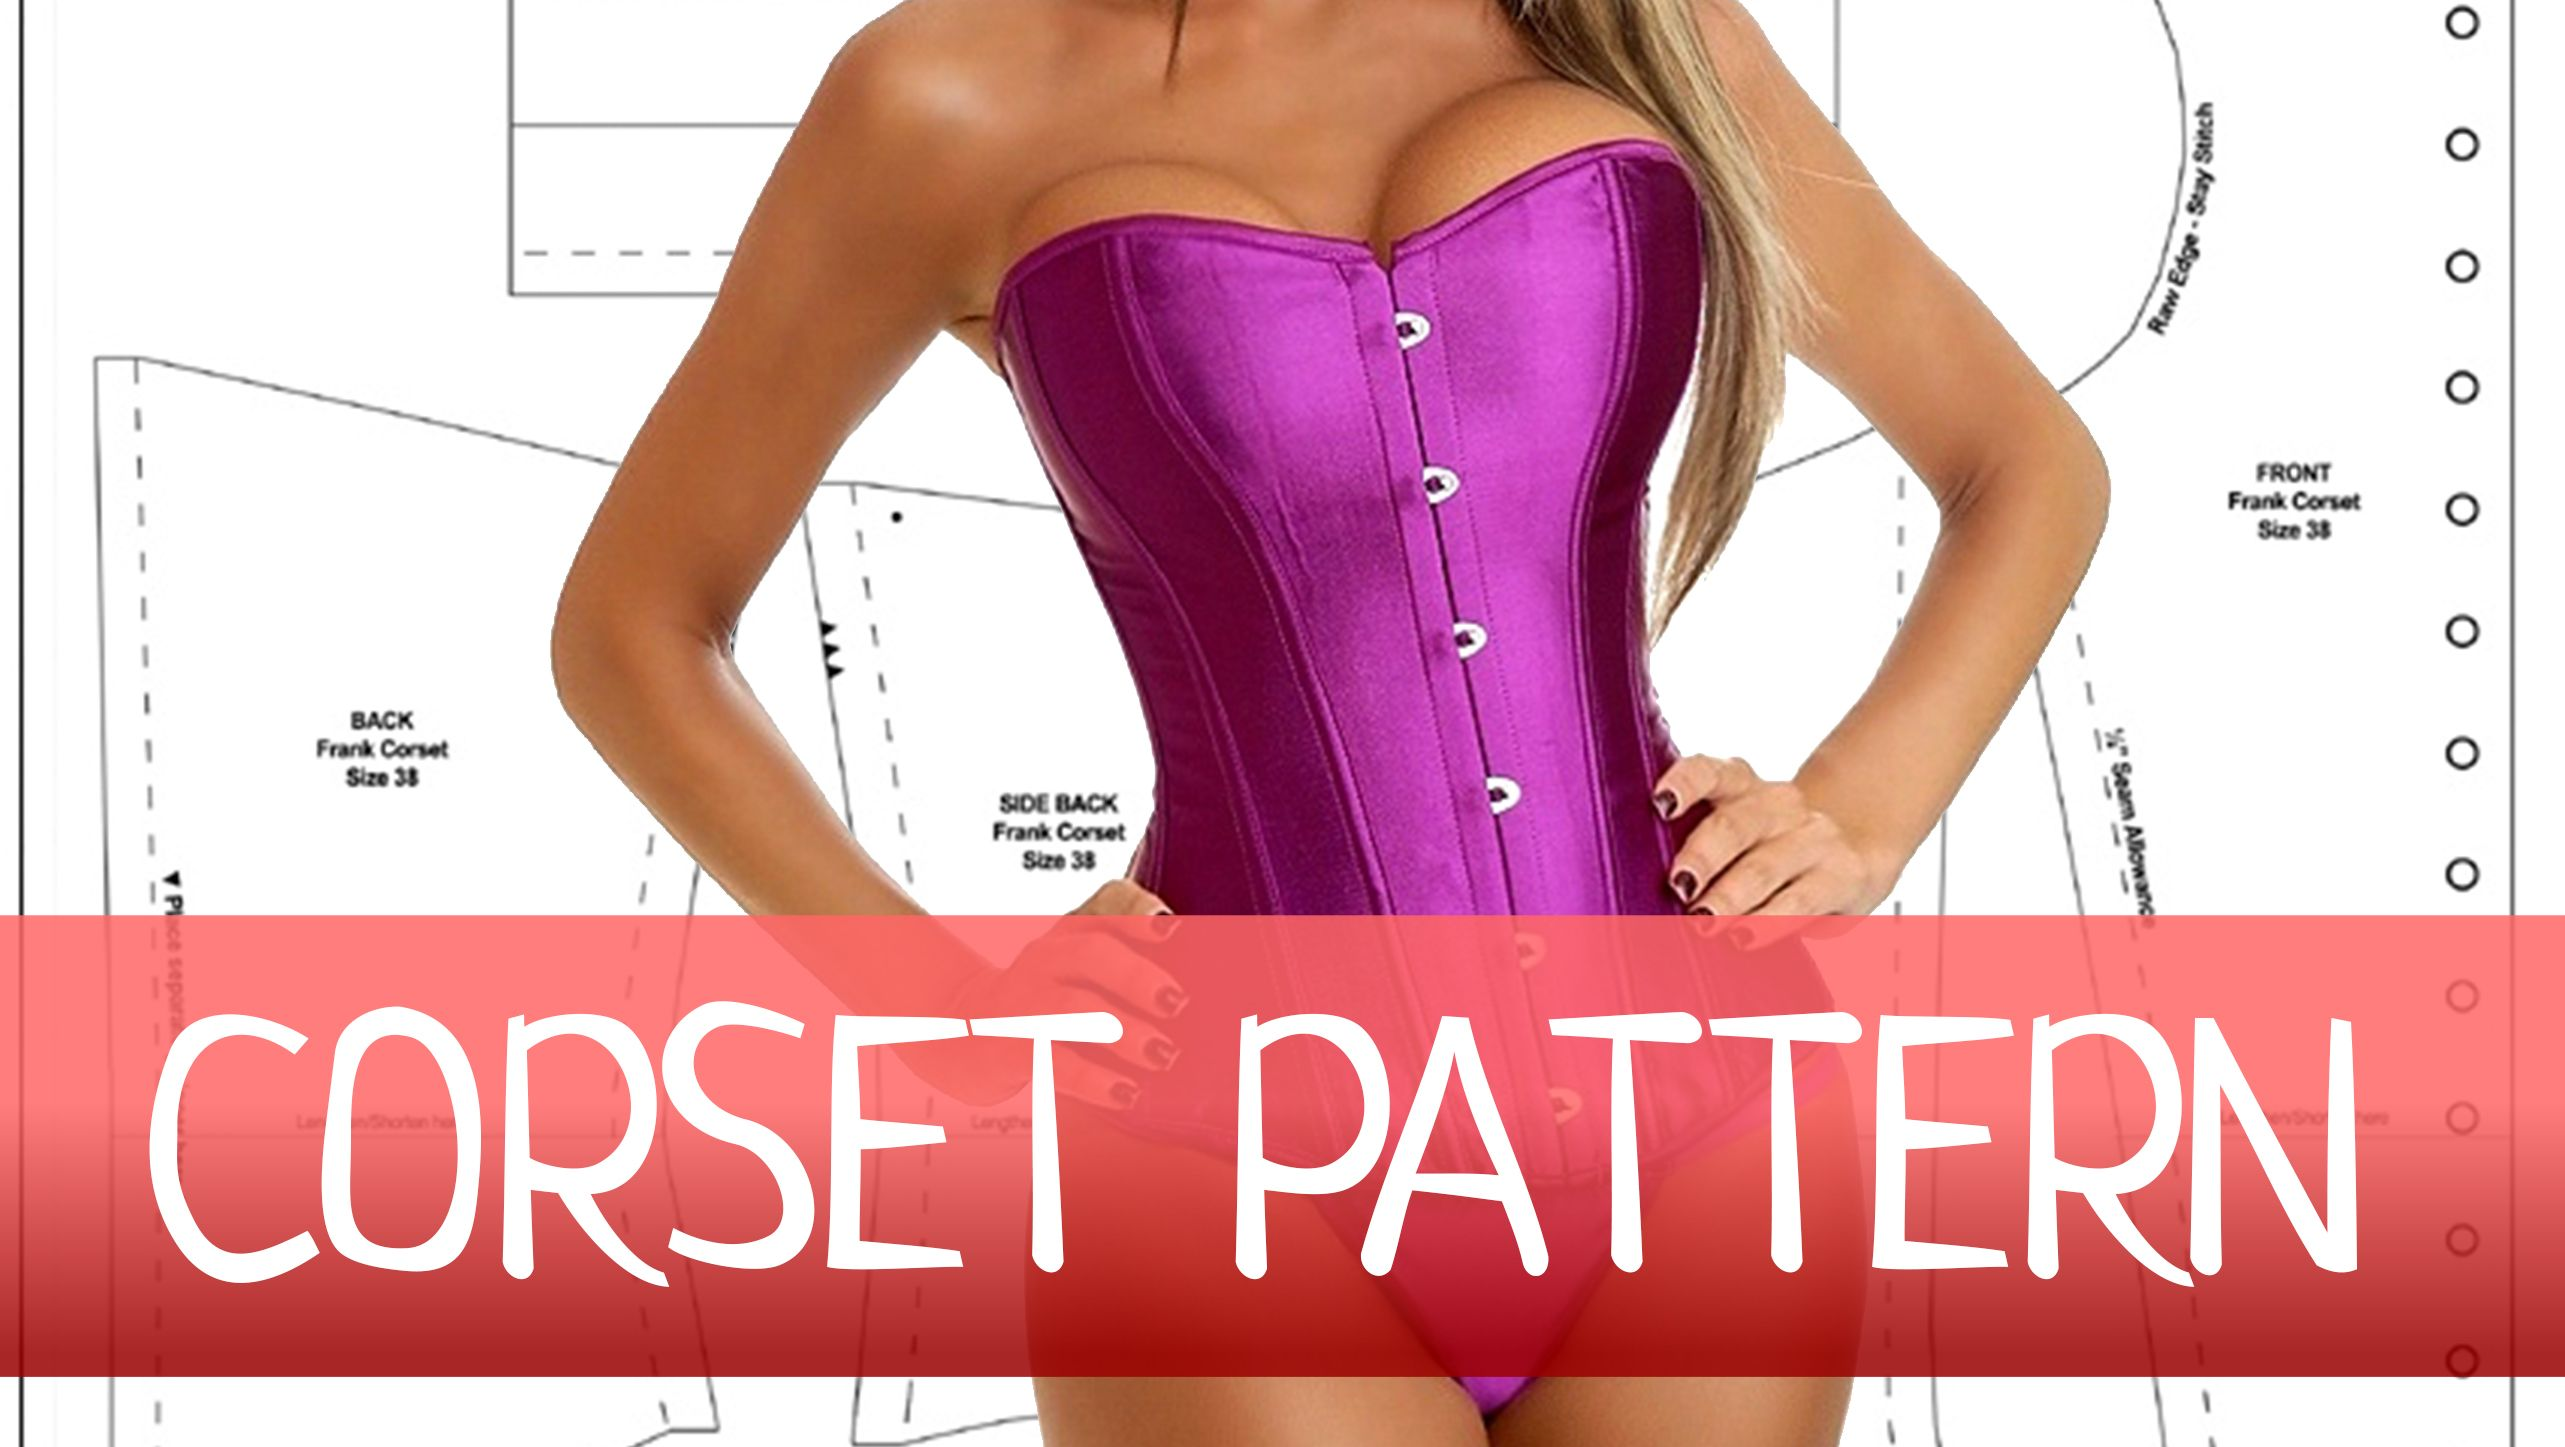 Corset pattern - how to alter and adjust to a different sizes and ...